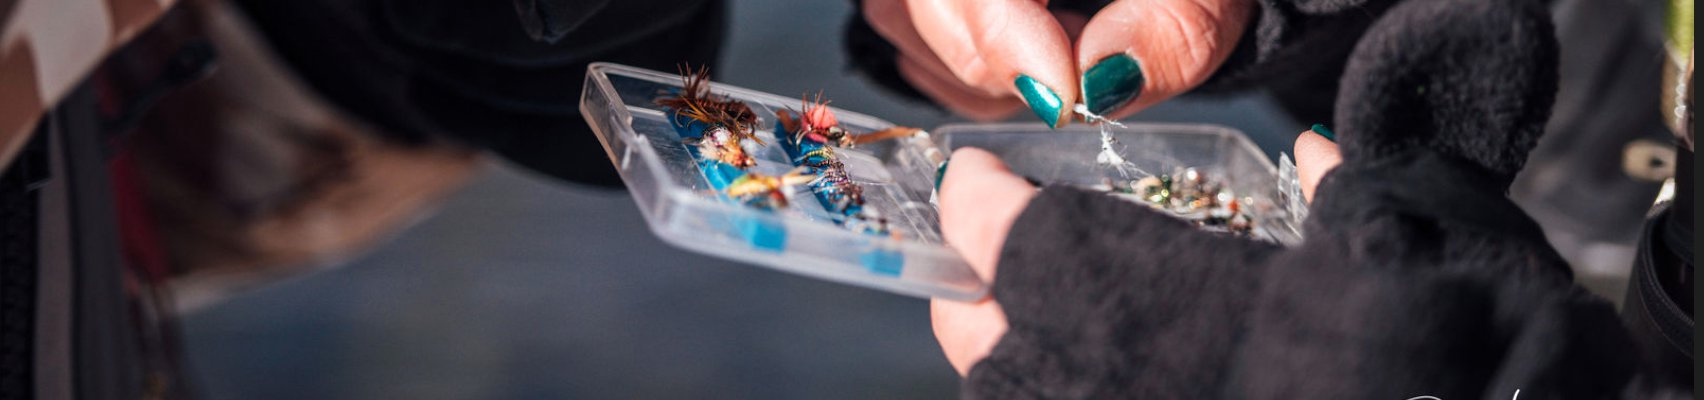 Selecting flies during the winter